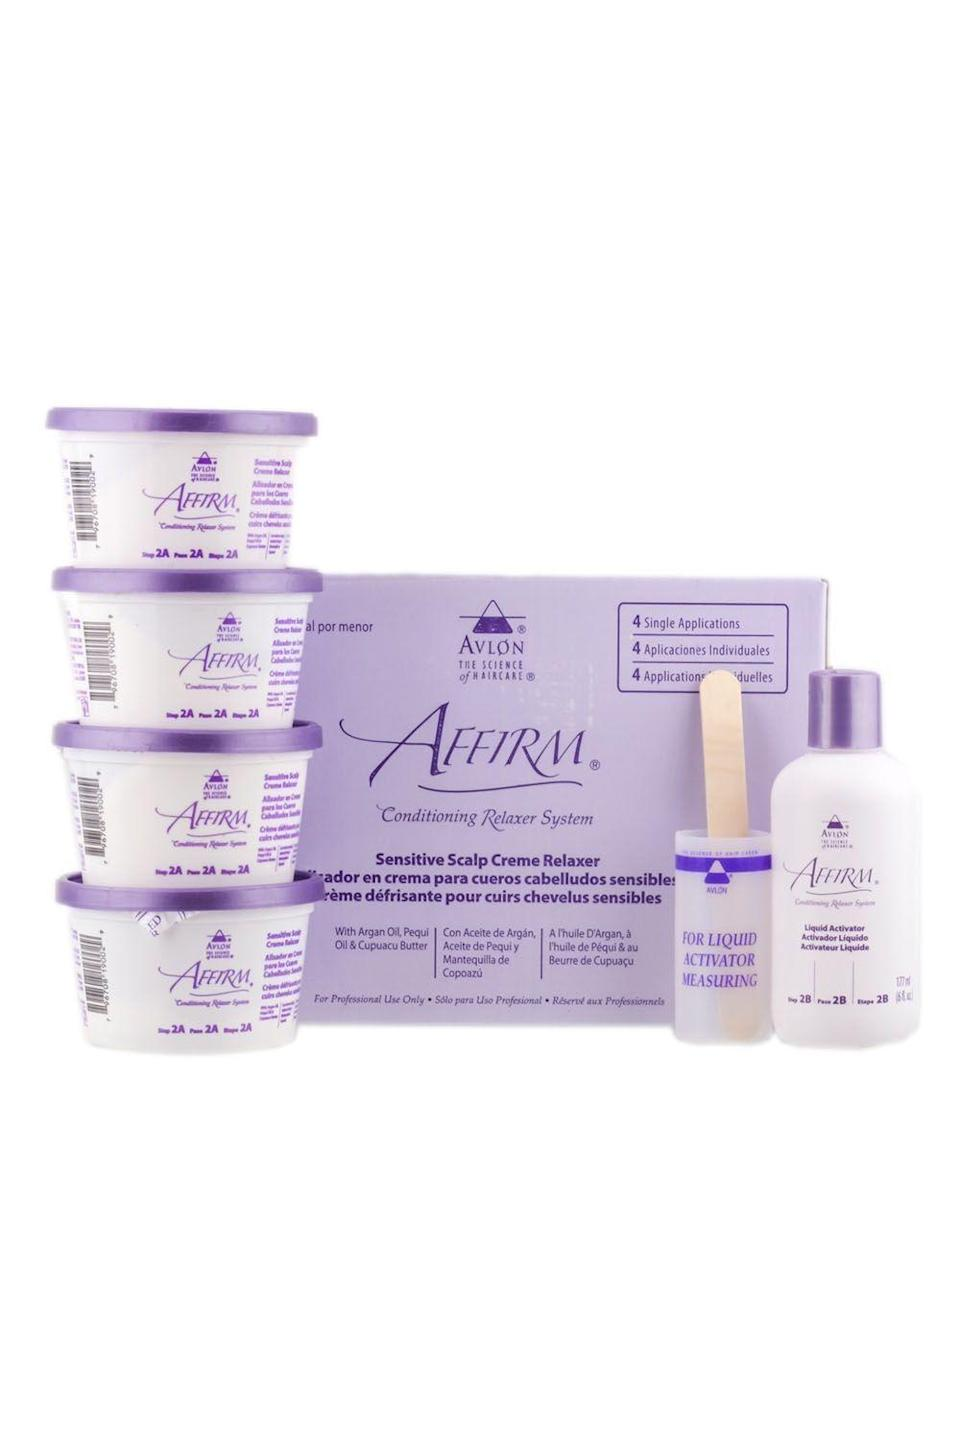 """<p><strong>Avlon</strong></p><p>amazon.com</p><p><strong>$53.89</strong></p><p><a href=""""https://www.amazon.com/dp/B00809F52Q?tag=syn-yahoo-20&ascsubtag=%5Bartid%7C10049.g.33368236%5Bsrc%7Cyahoo-us"""" rel=""""nofollow noopener"""" target=""""_blank"""" data-ylk=""""slk:Shop Now"""" class=""""link rapid-noclick-resp"""">Shop Now</a></p><p>FYI, it's 2020 and scalp irritation is no longer a necessary evil that comes with getting your hair relaxed. This one <strong>gets the job done, while also being super gentle on your </strong><strong><a href=""""https://www.cosmopolitan.com/style-beauty/beauty/g30896457/dry-scalp-treatment-products/"""" rel=""""nofollow noopener"""" target=""""_blank"""" data-ylk=""""slk:scalp"""" class=""""link rapid-noclick-resp"""">scalp</a></strong>. Plus, it doesn't have that intense chemical smell, so it's truly a win-win.</p>"""